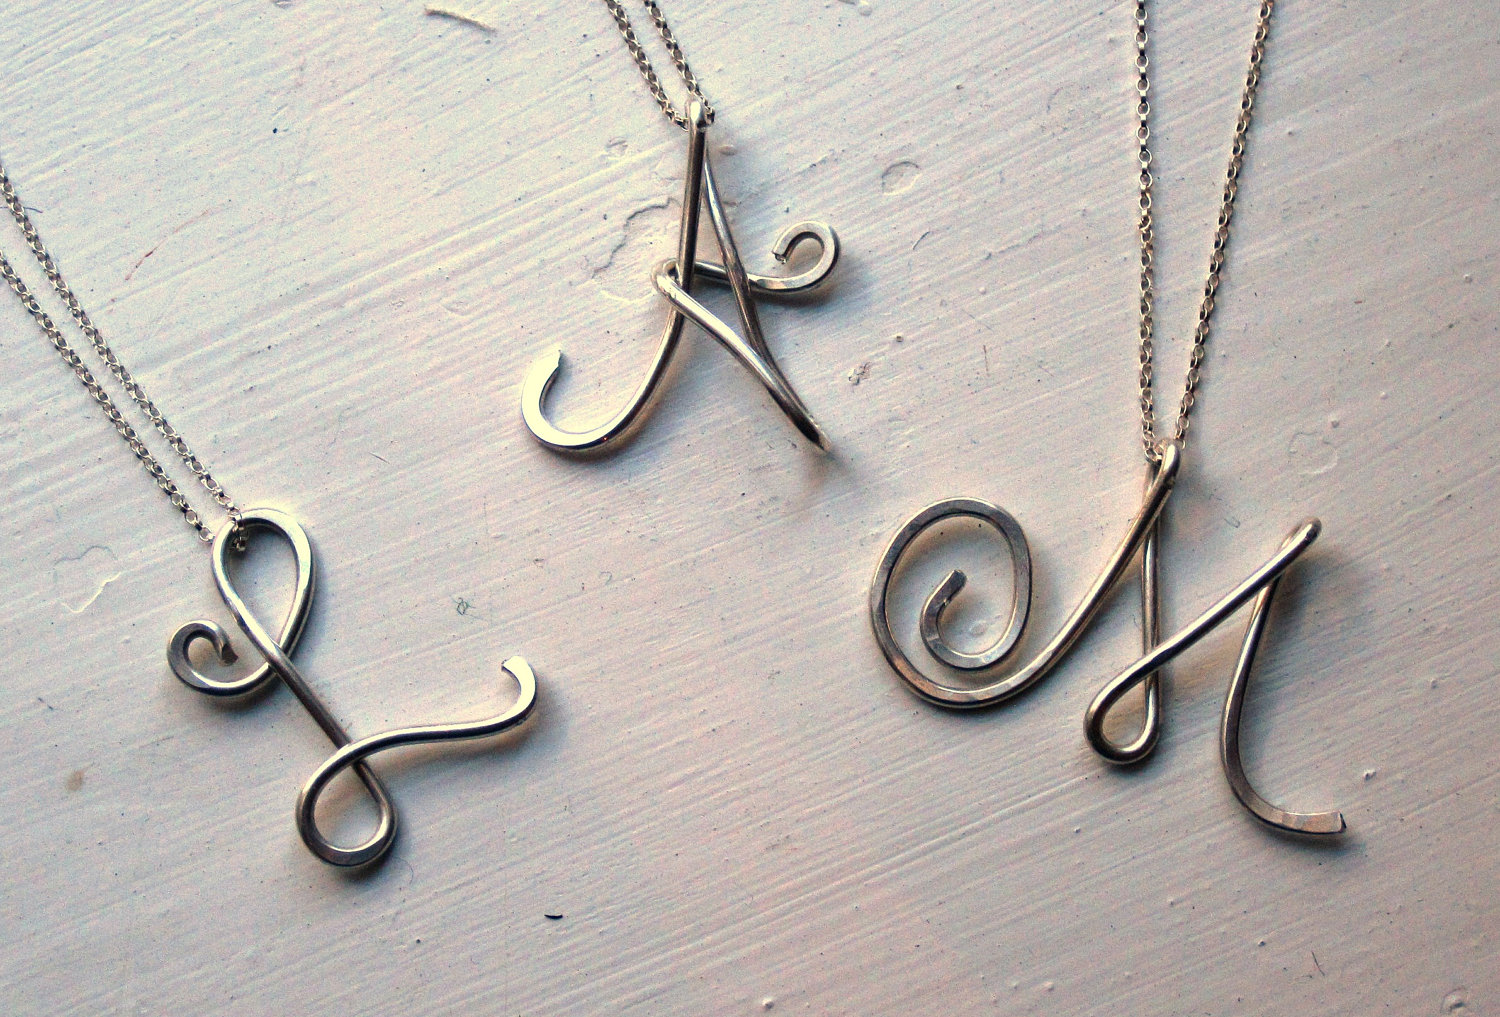 Wedding Gift Jewelry : Unique Wedding Gifts for Bridesmaids Initial Jewelry Accessories 5 ...